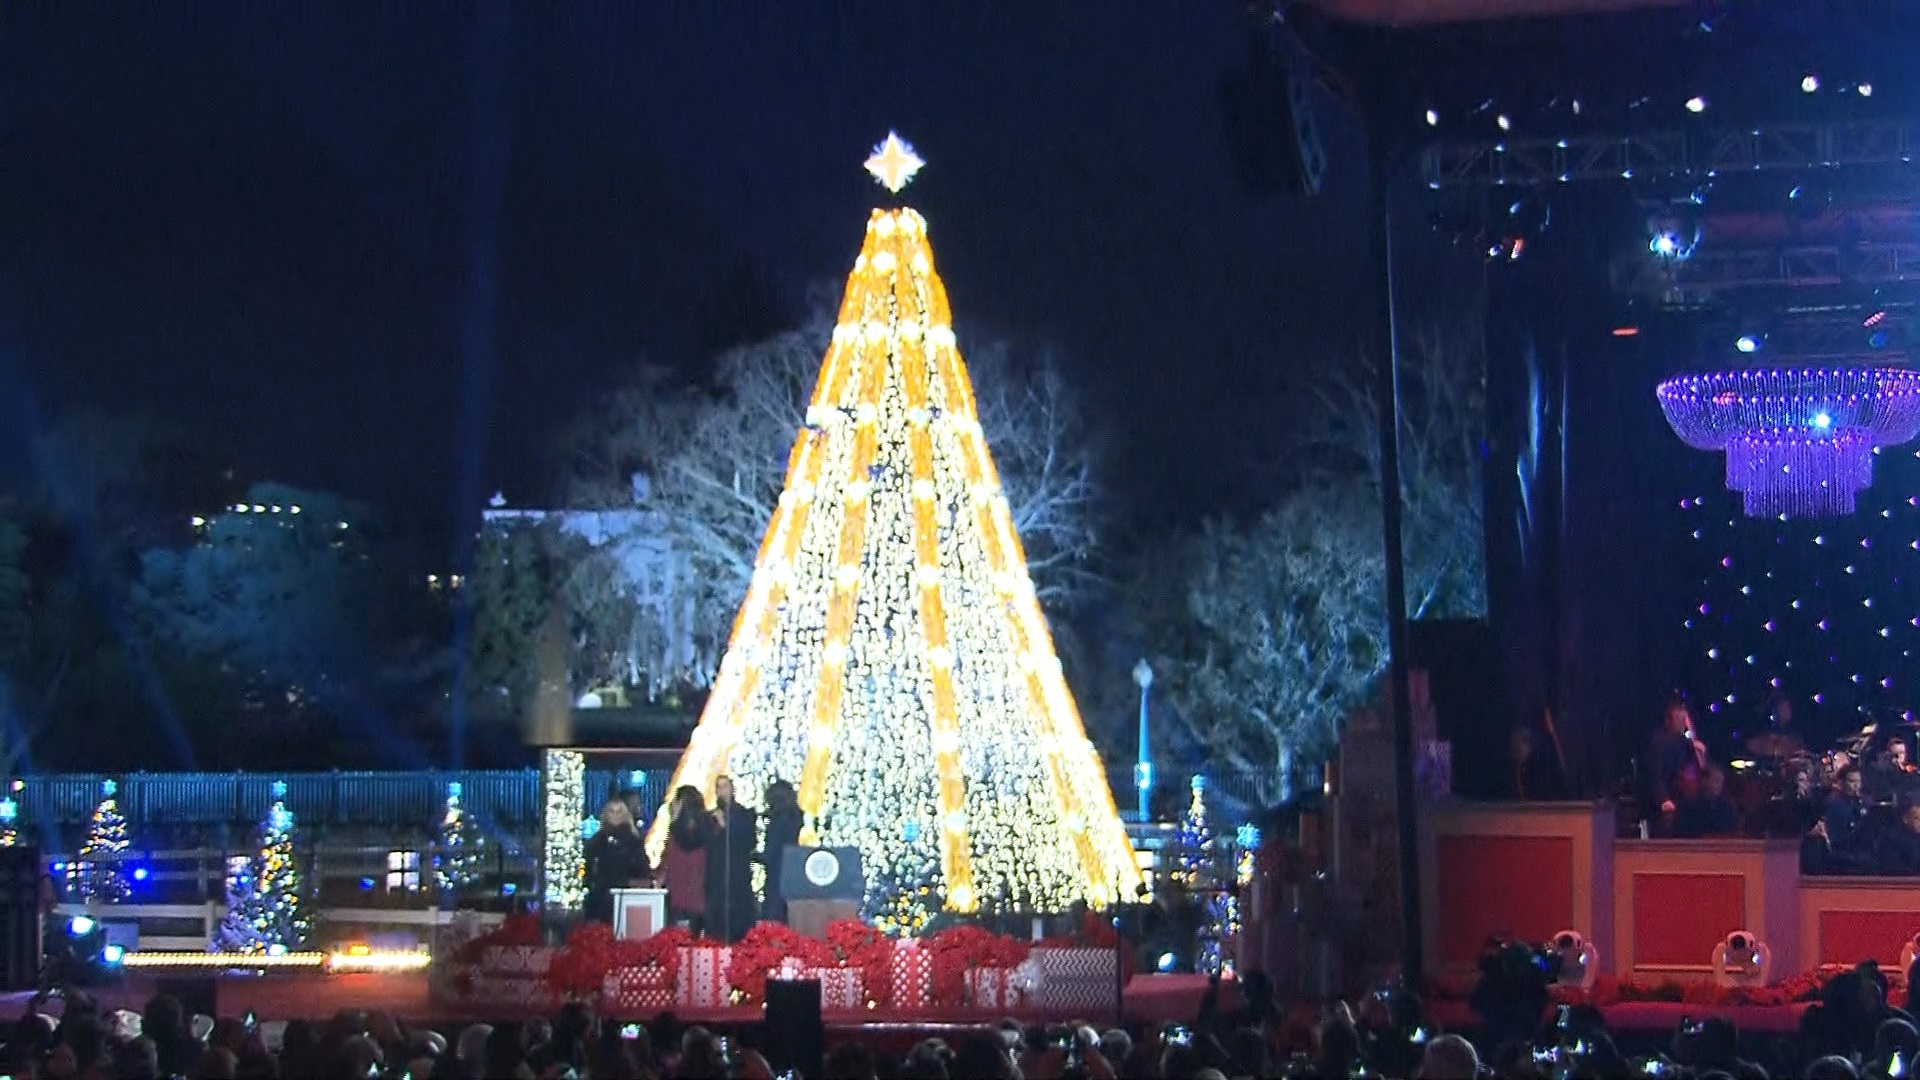 The Obamas light the National Christmas Tree